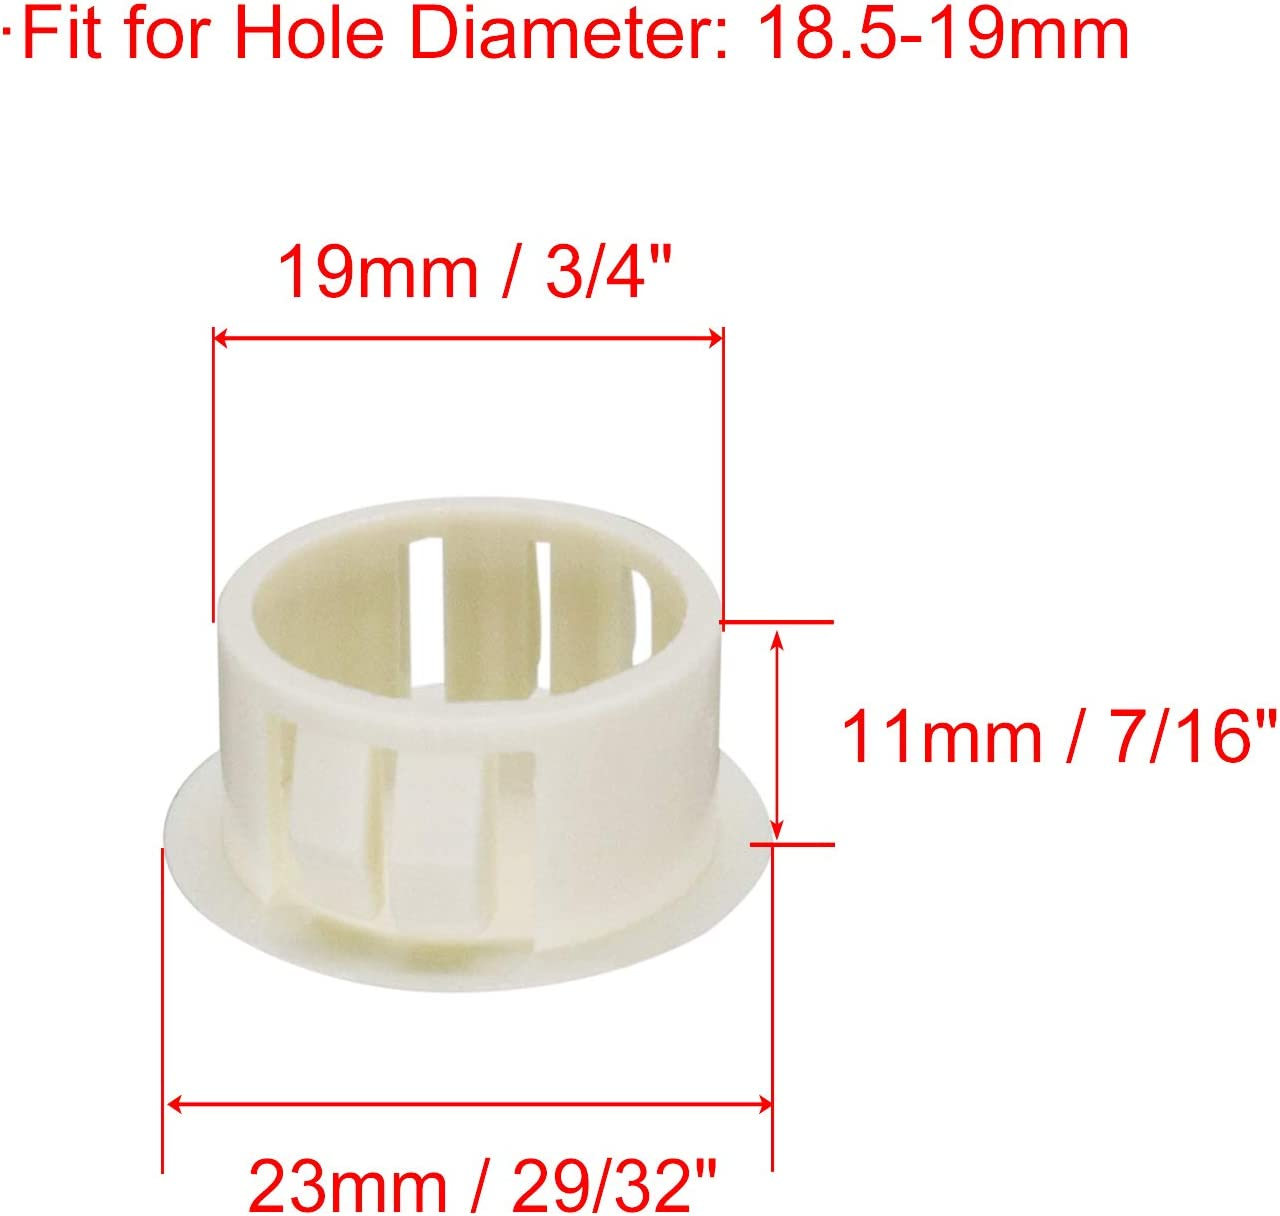 1 Fit for 24.5-25mm Diameter Locking Hole Tube Flush Type Panel Plugs Fastener Cover for Kitchen Cabinet Furniture White 25 Pcs VictorsHome Hole Plugs Plastic 25mm